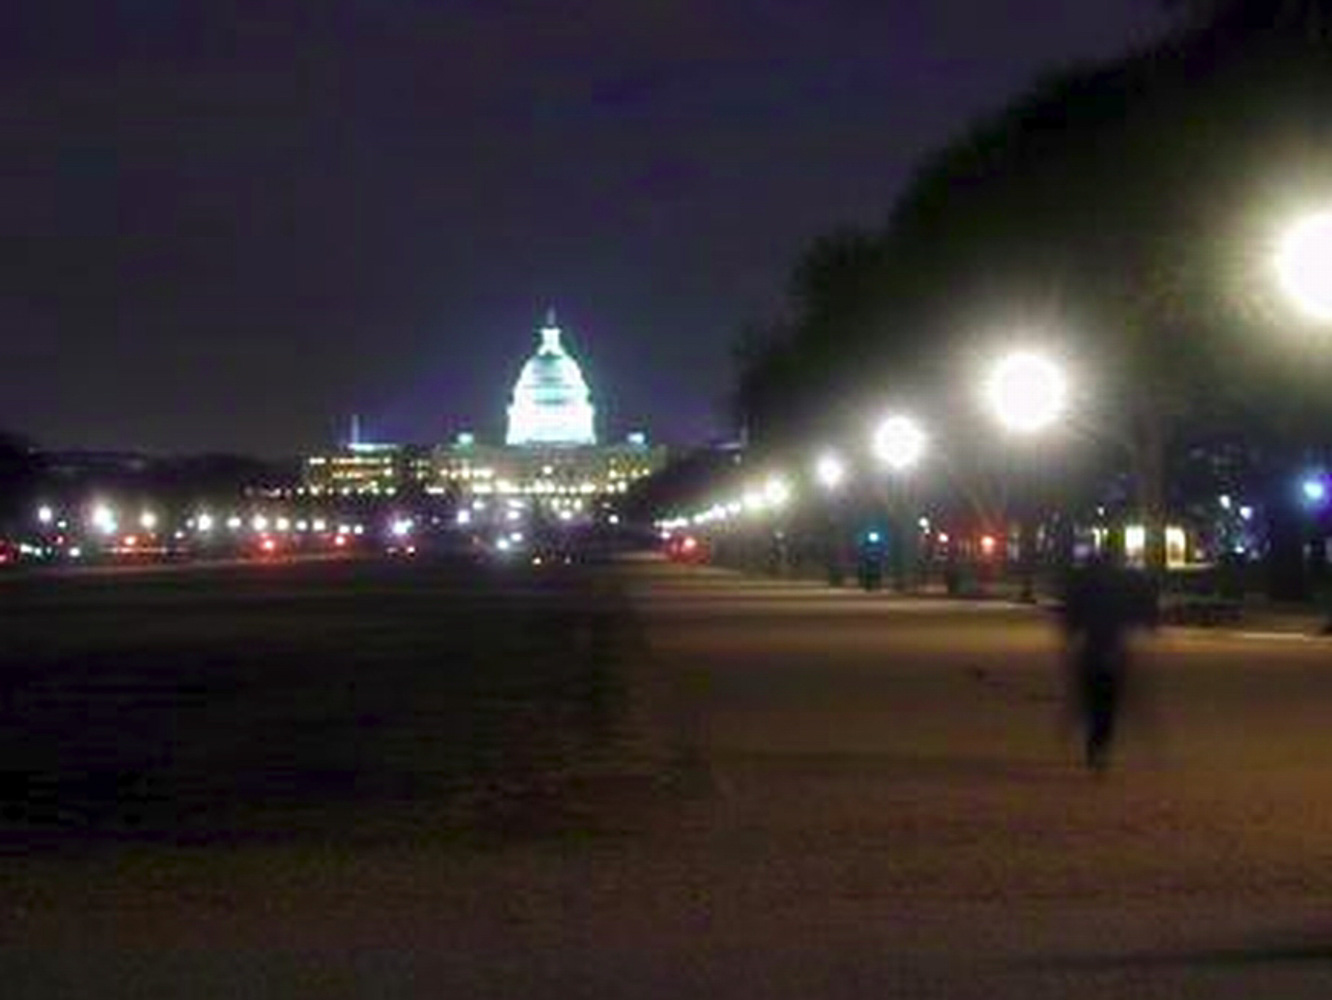 Washington DC, Capitol building at night